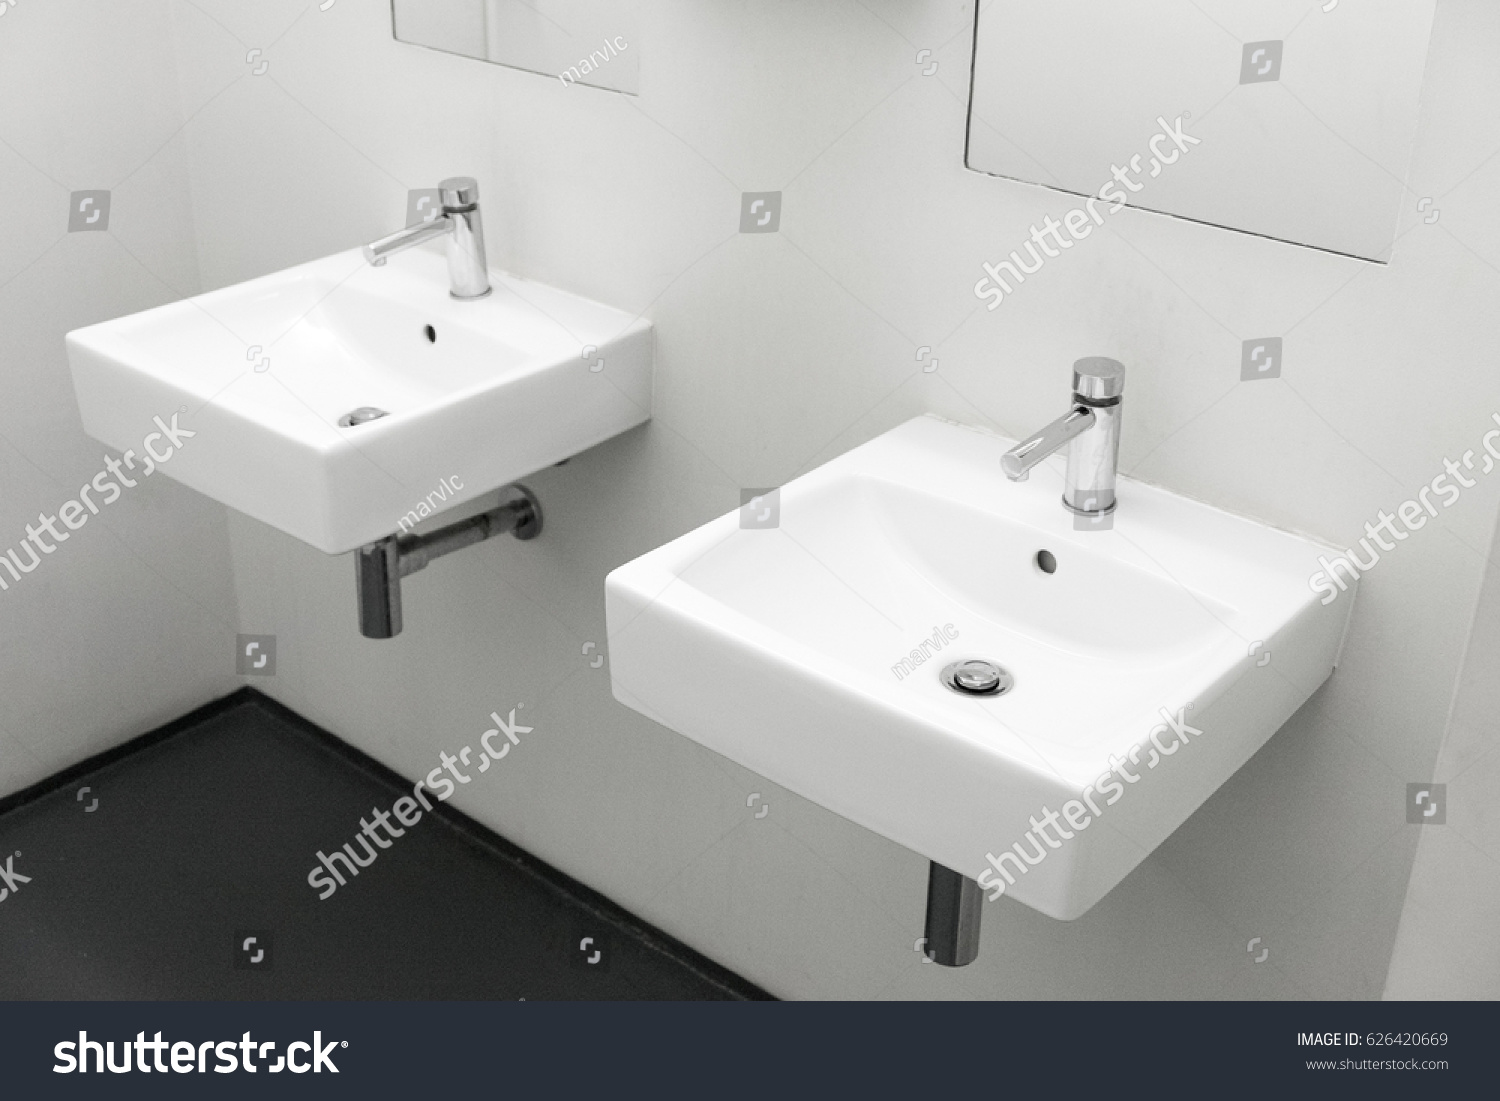 Two Washbasin To European Public Toilet Modern Ceramic Washbasins Sink With Chrome